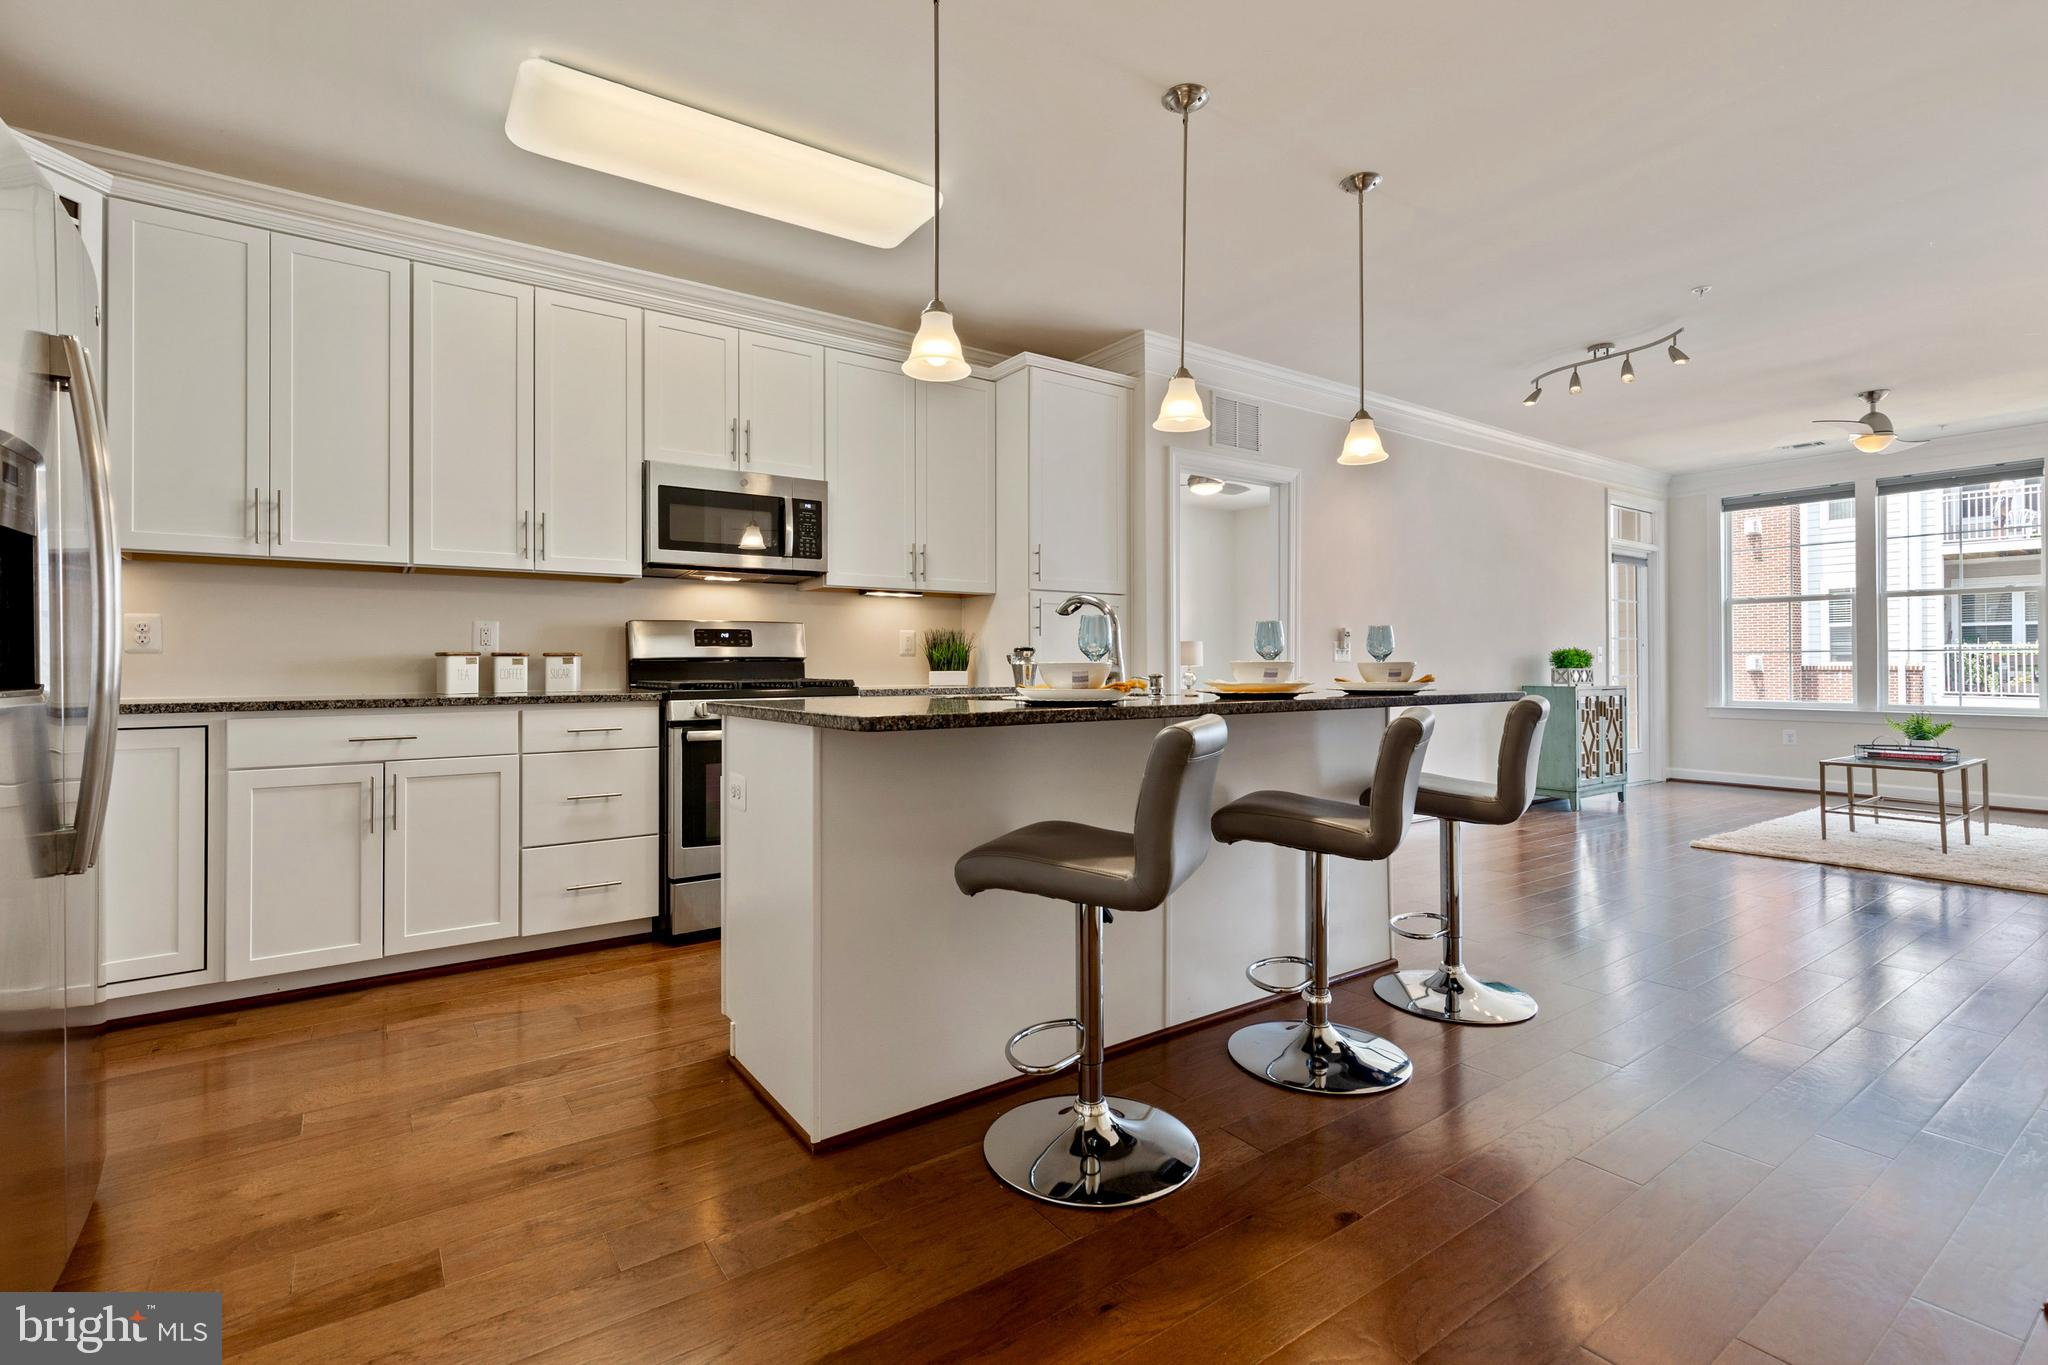 Beautifully maintained 2 bed, 2 bath unit in the charming Discovery Square community. Metros coming